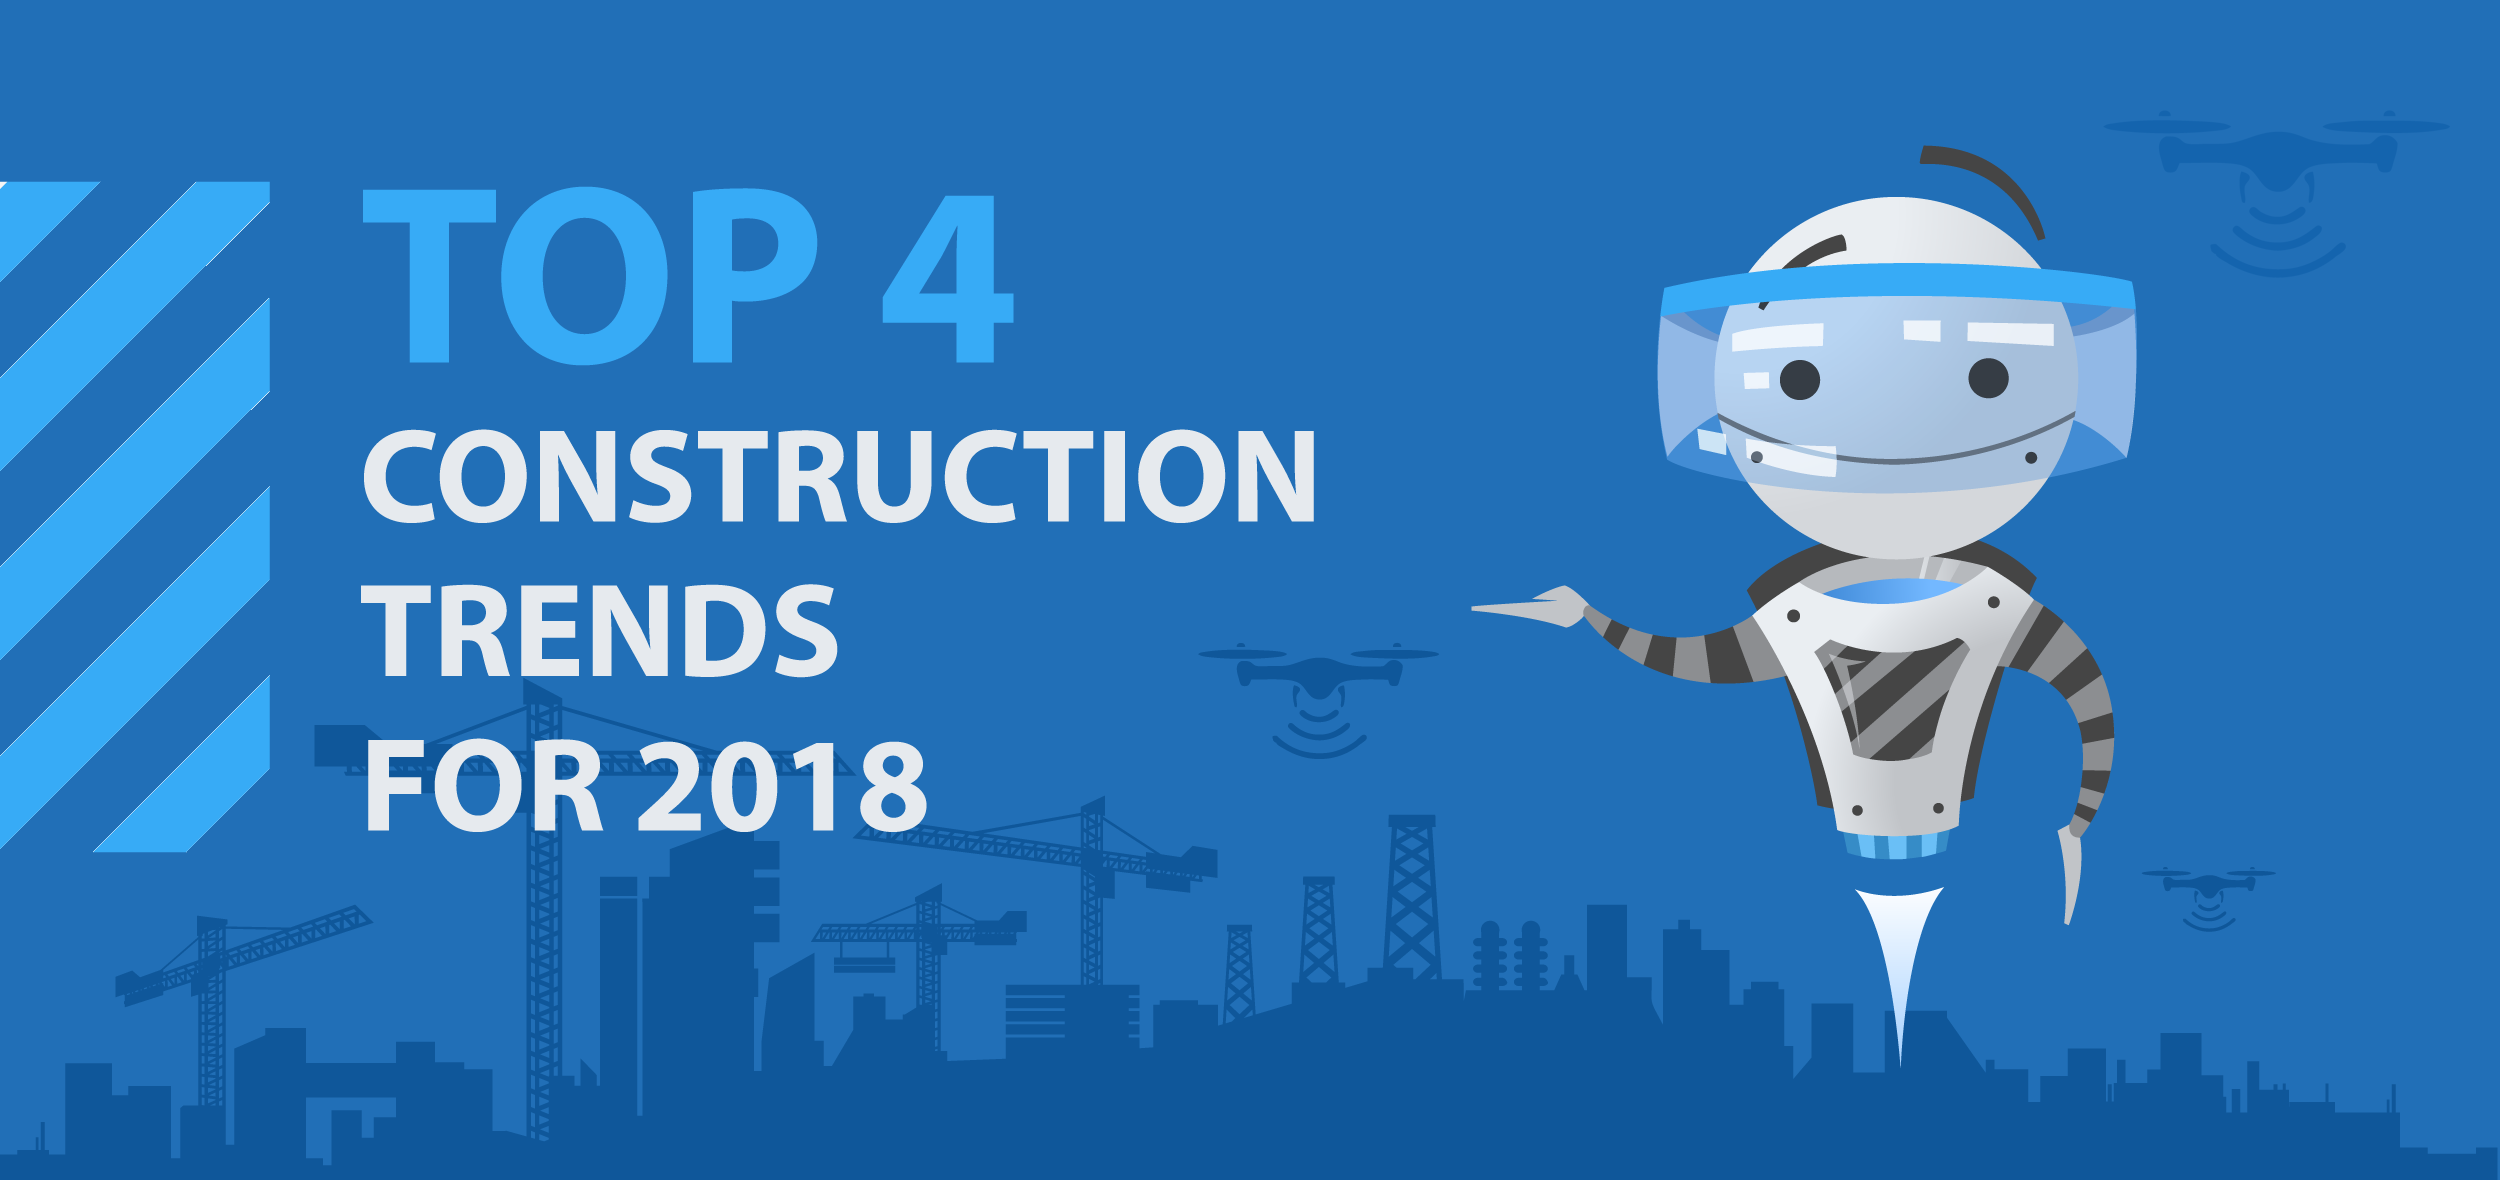 TOP 4, Construction Trends For 2018